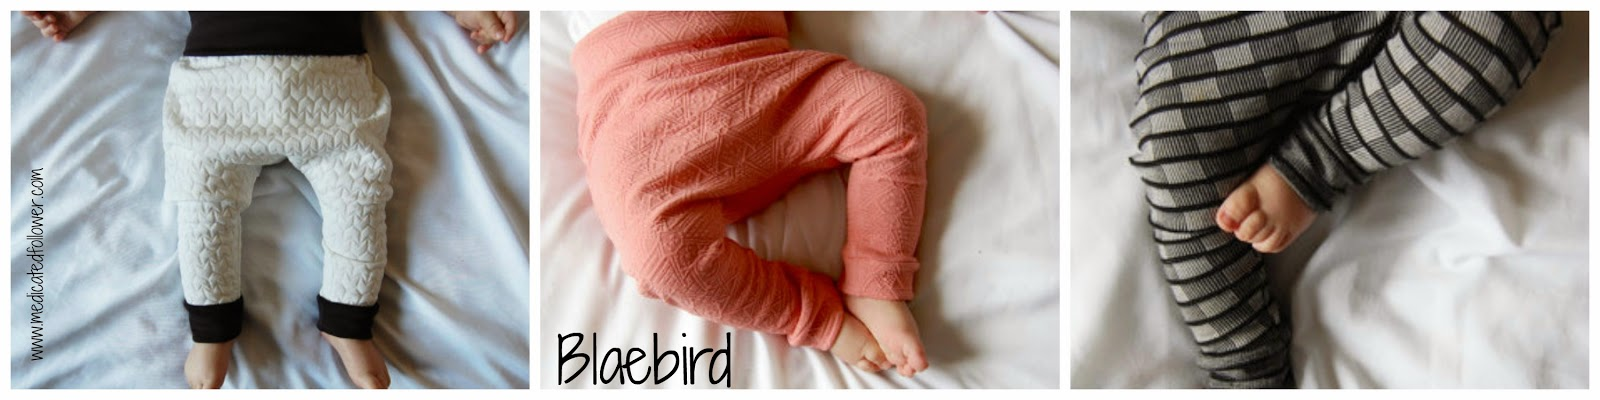 Blaebird, kids fashion, baby harems